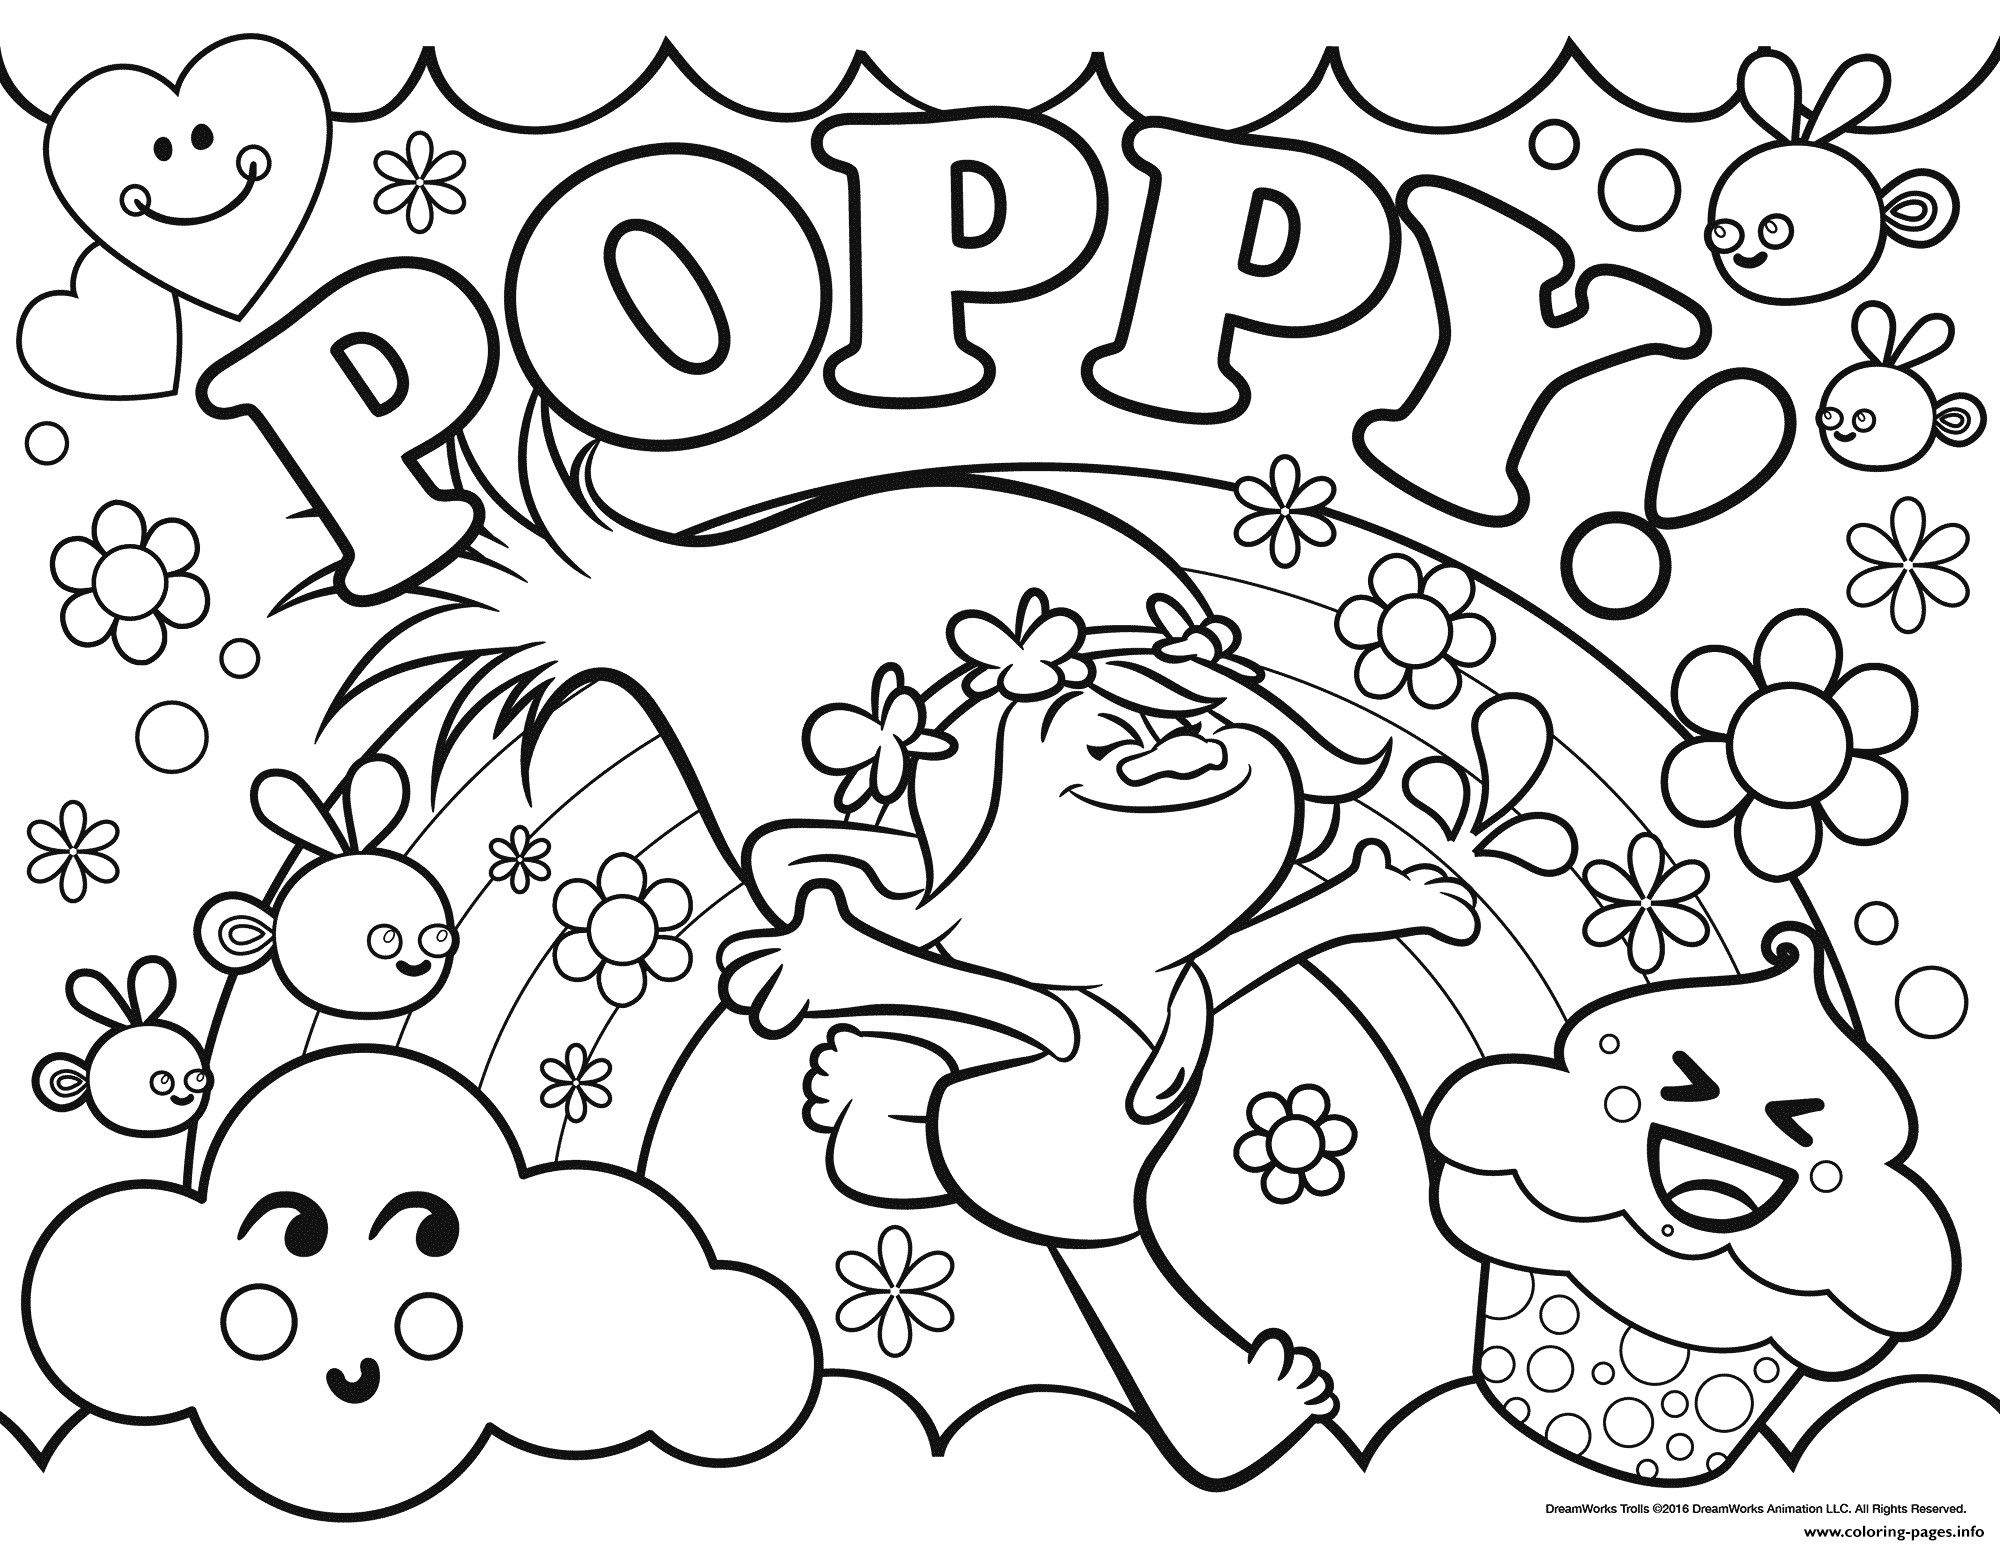 Trolls Coloring Pages Birthday Through The Thousands Of Images Online In Relation To Trolls Colorin Poppy Coloring Page Cartoon Coloring Pages Coloring Books